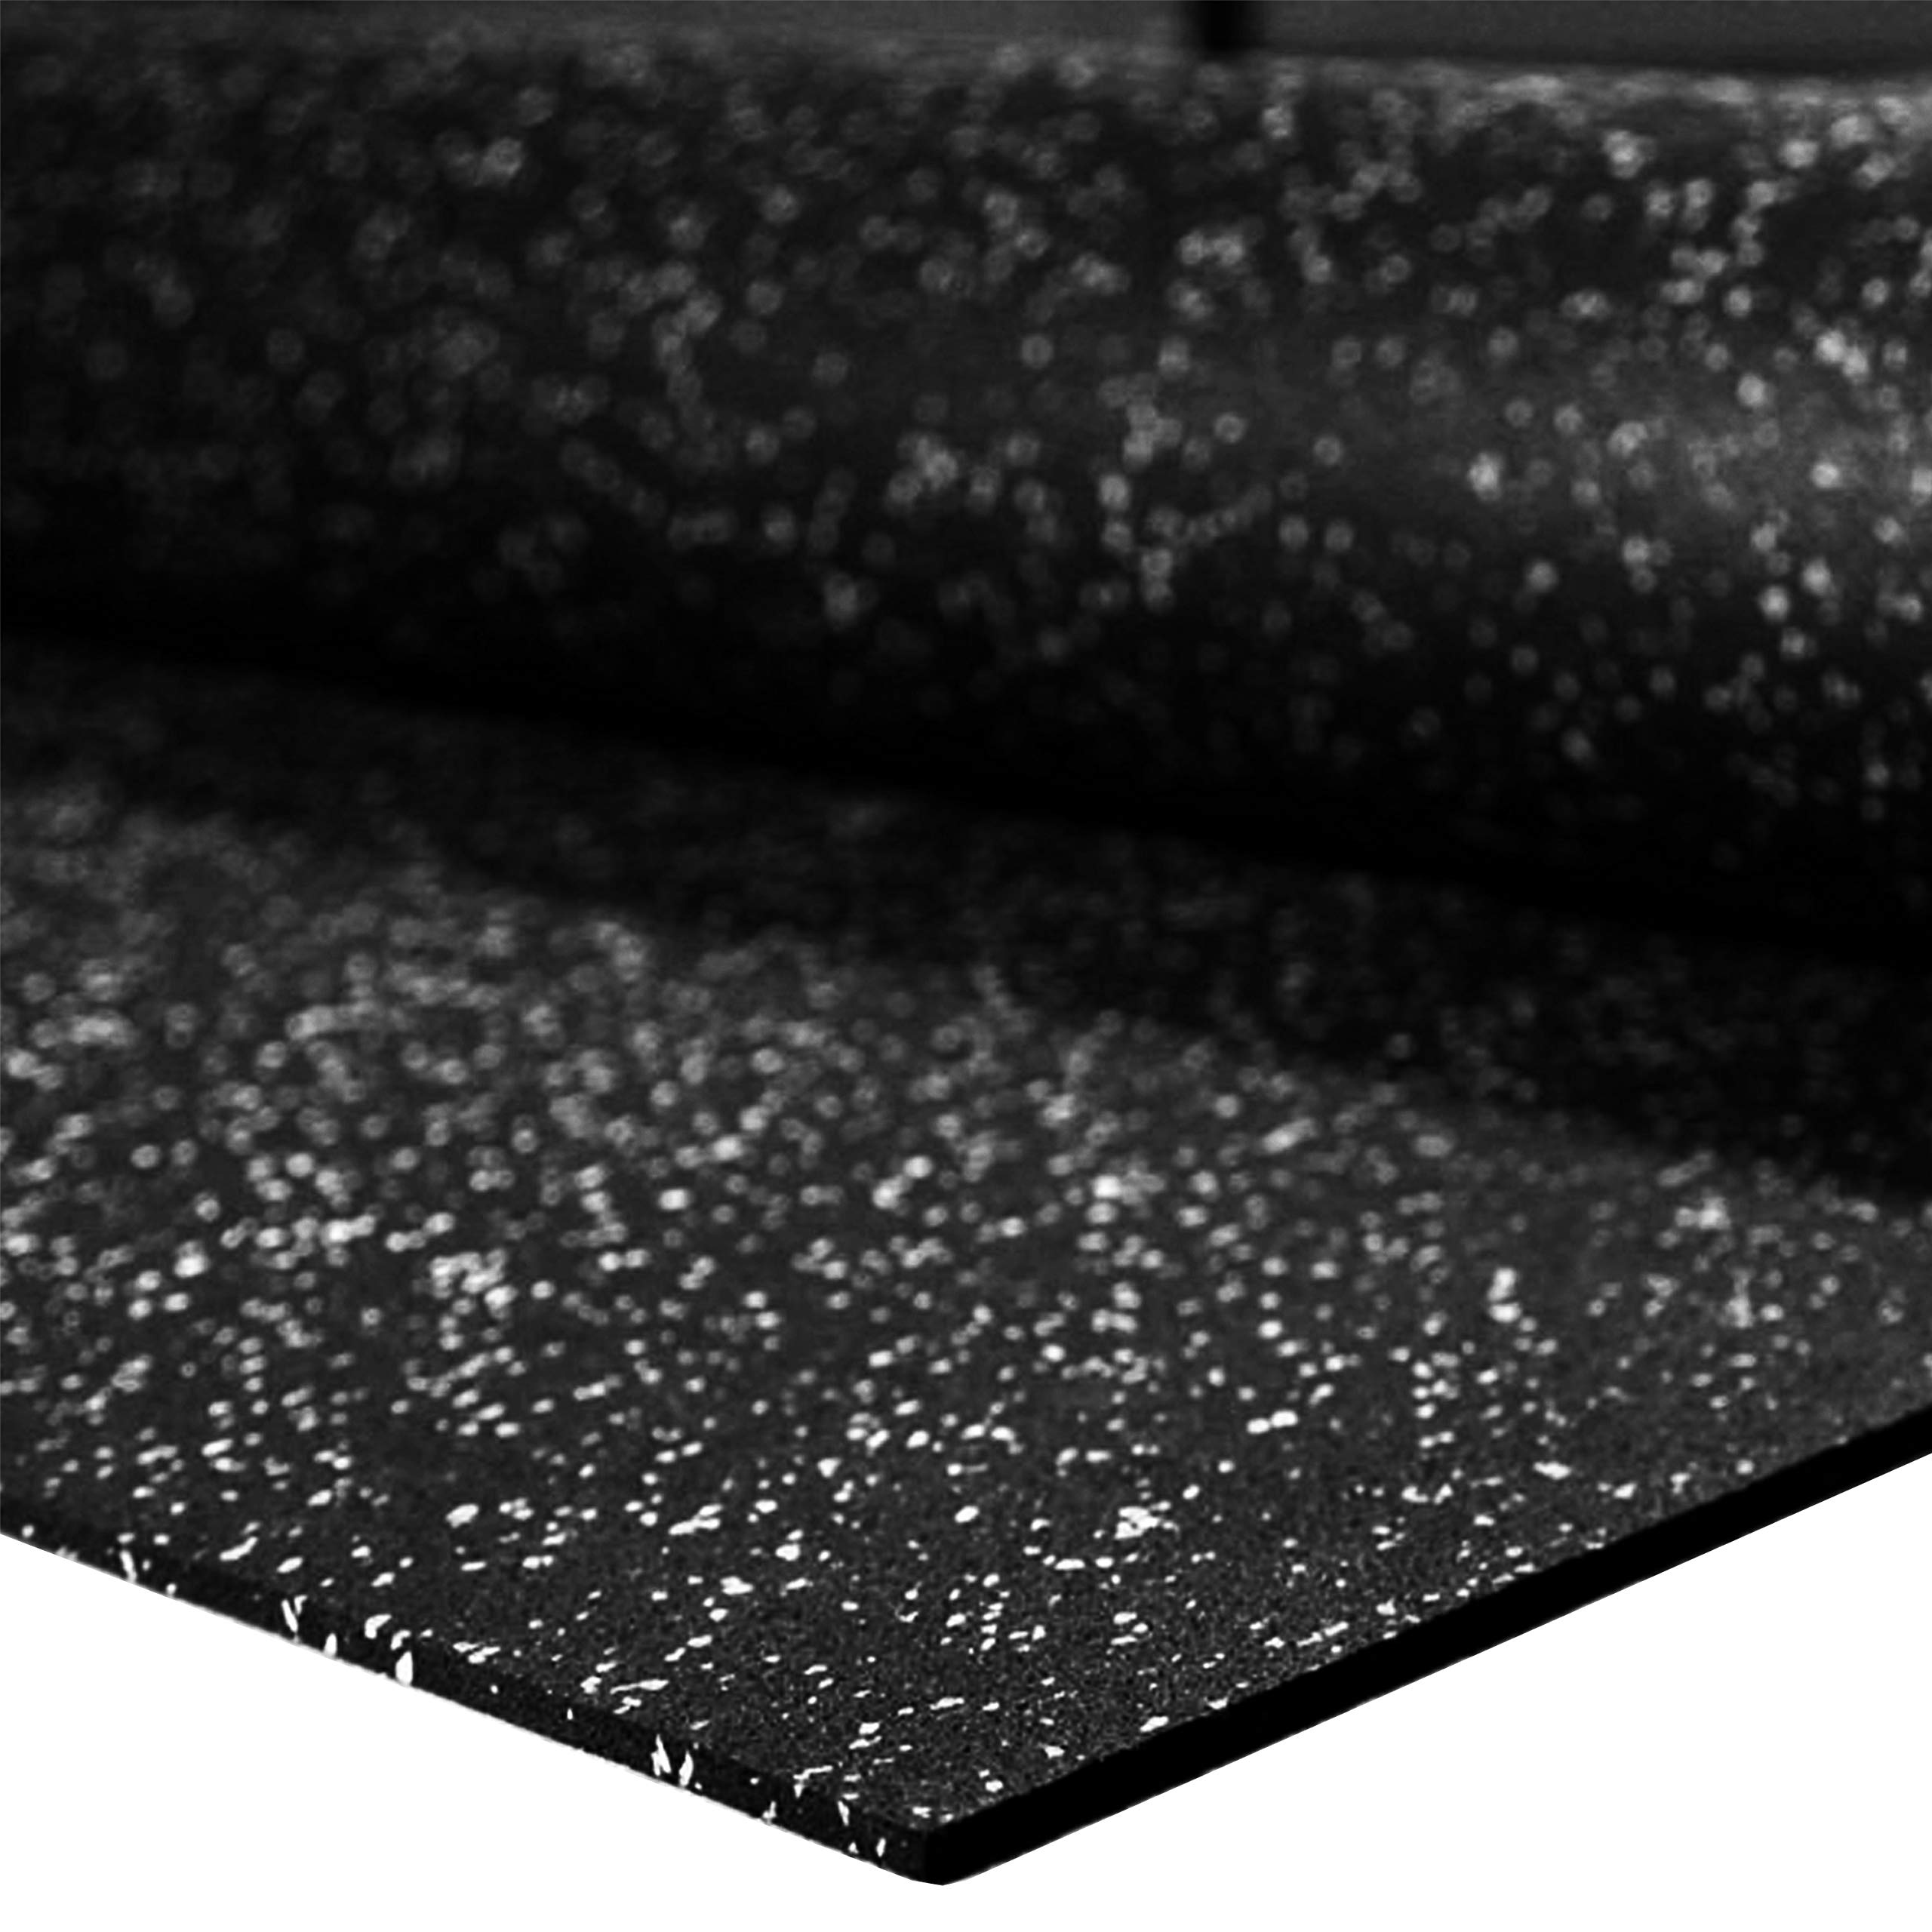 """IncStores 1/4"""" Tough Rubber Roll (4' x 10') - Excellent Gym Floor mats for Medium/Large Equipment and Light/Moderate Free Weights (5 Mats - 4'x10' Egg Shell)"""